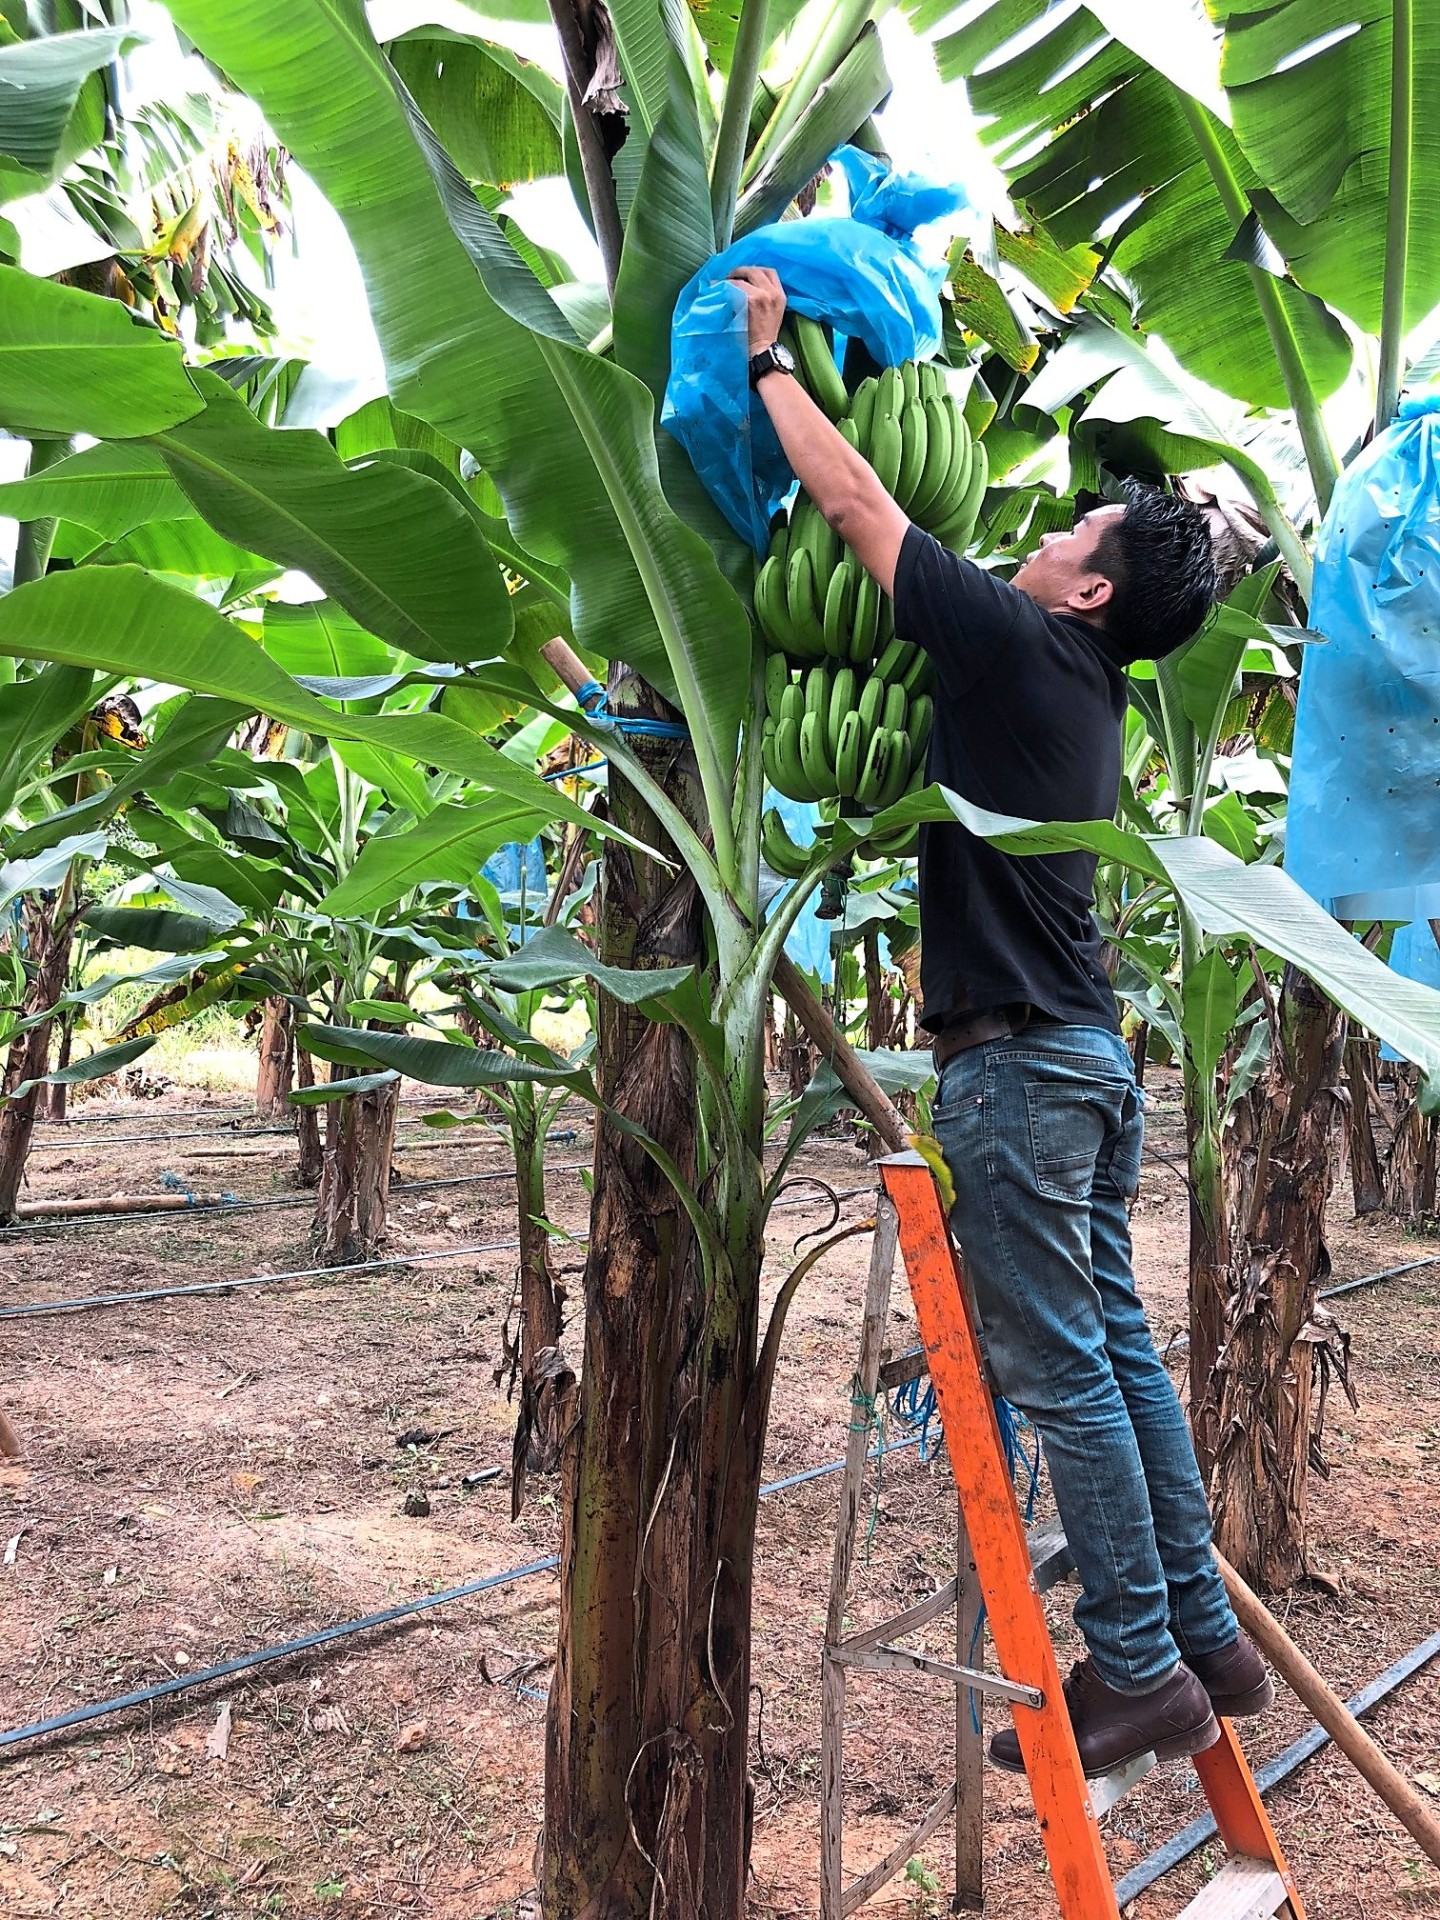 Higher yields: Agrofresh director Edmond Chow unveils a banana bunch at its R&D plantation in Puchong. The Cavendish variety can produce over 30kg of fruits in each cycle.